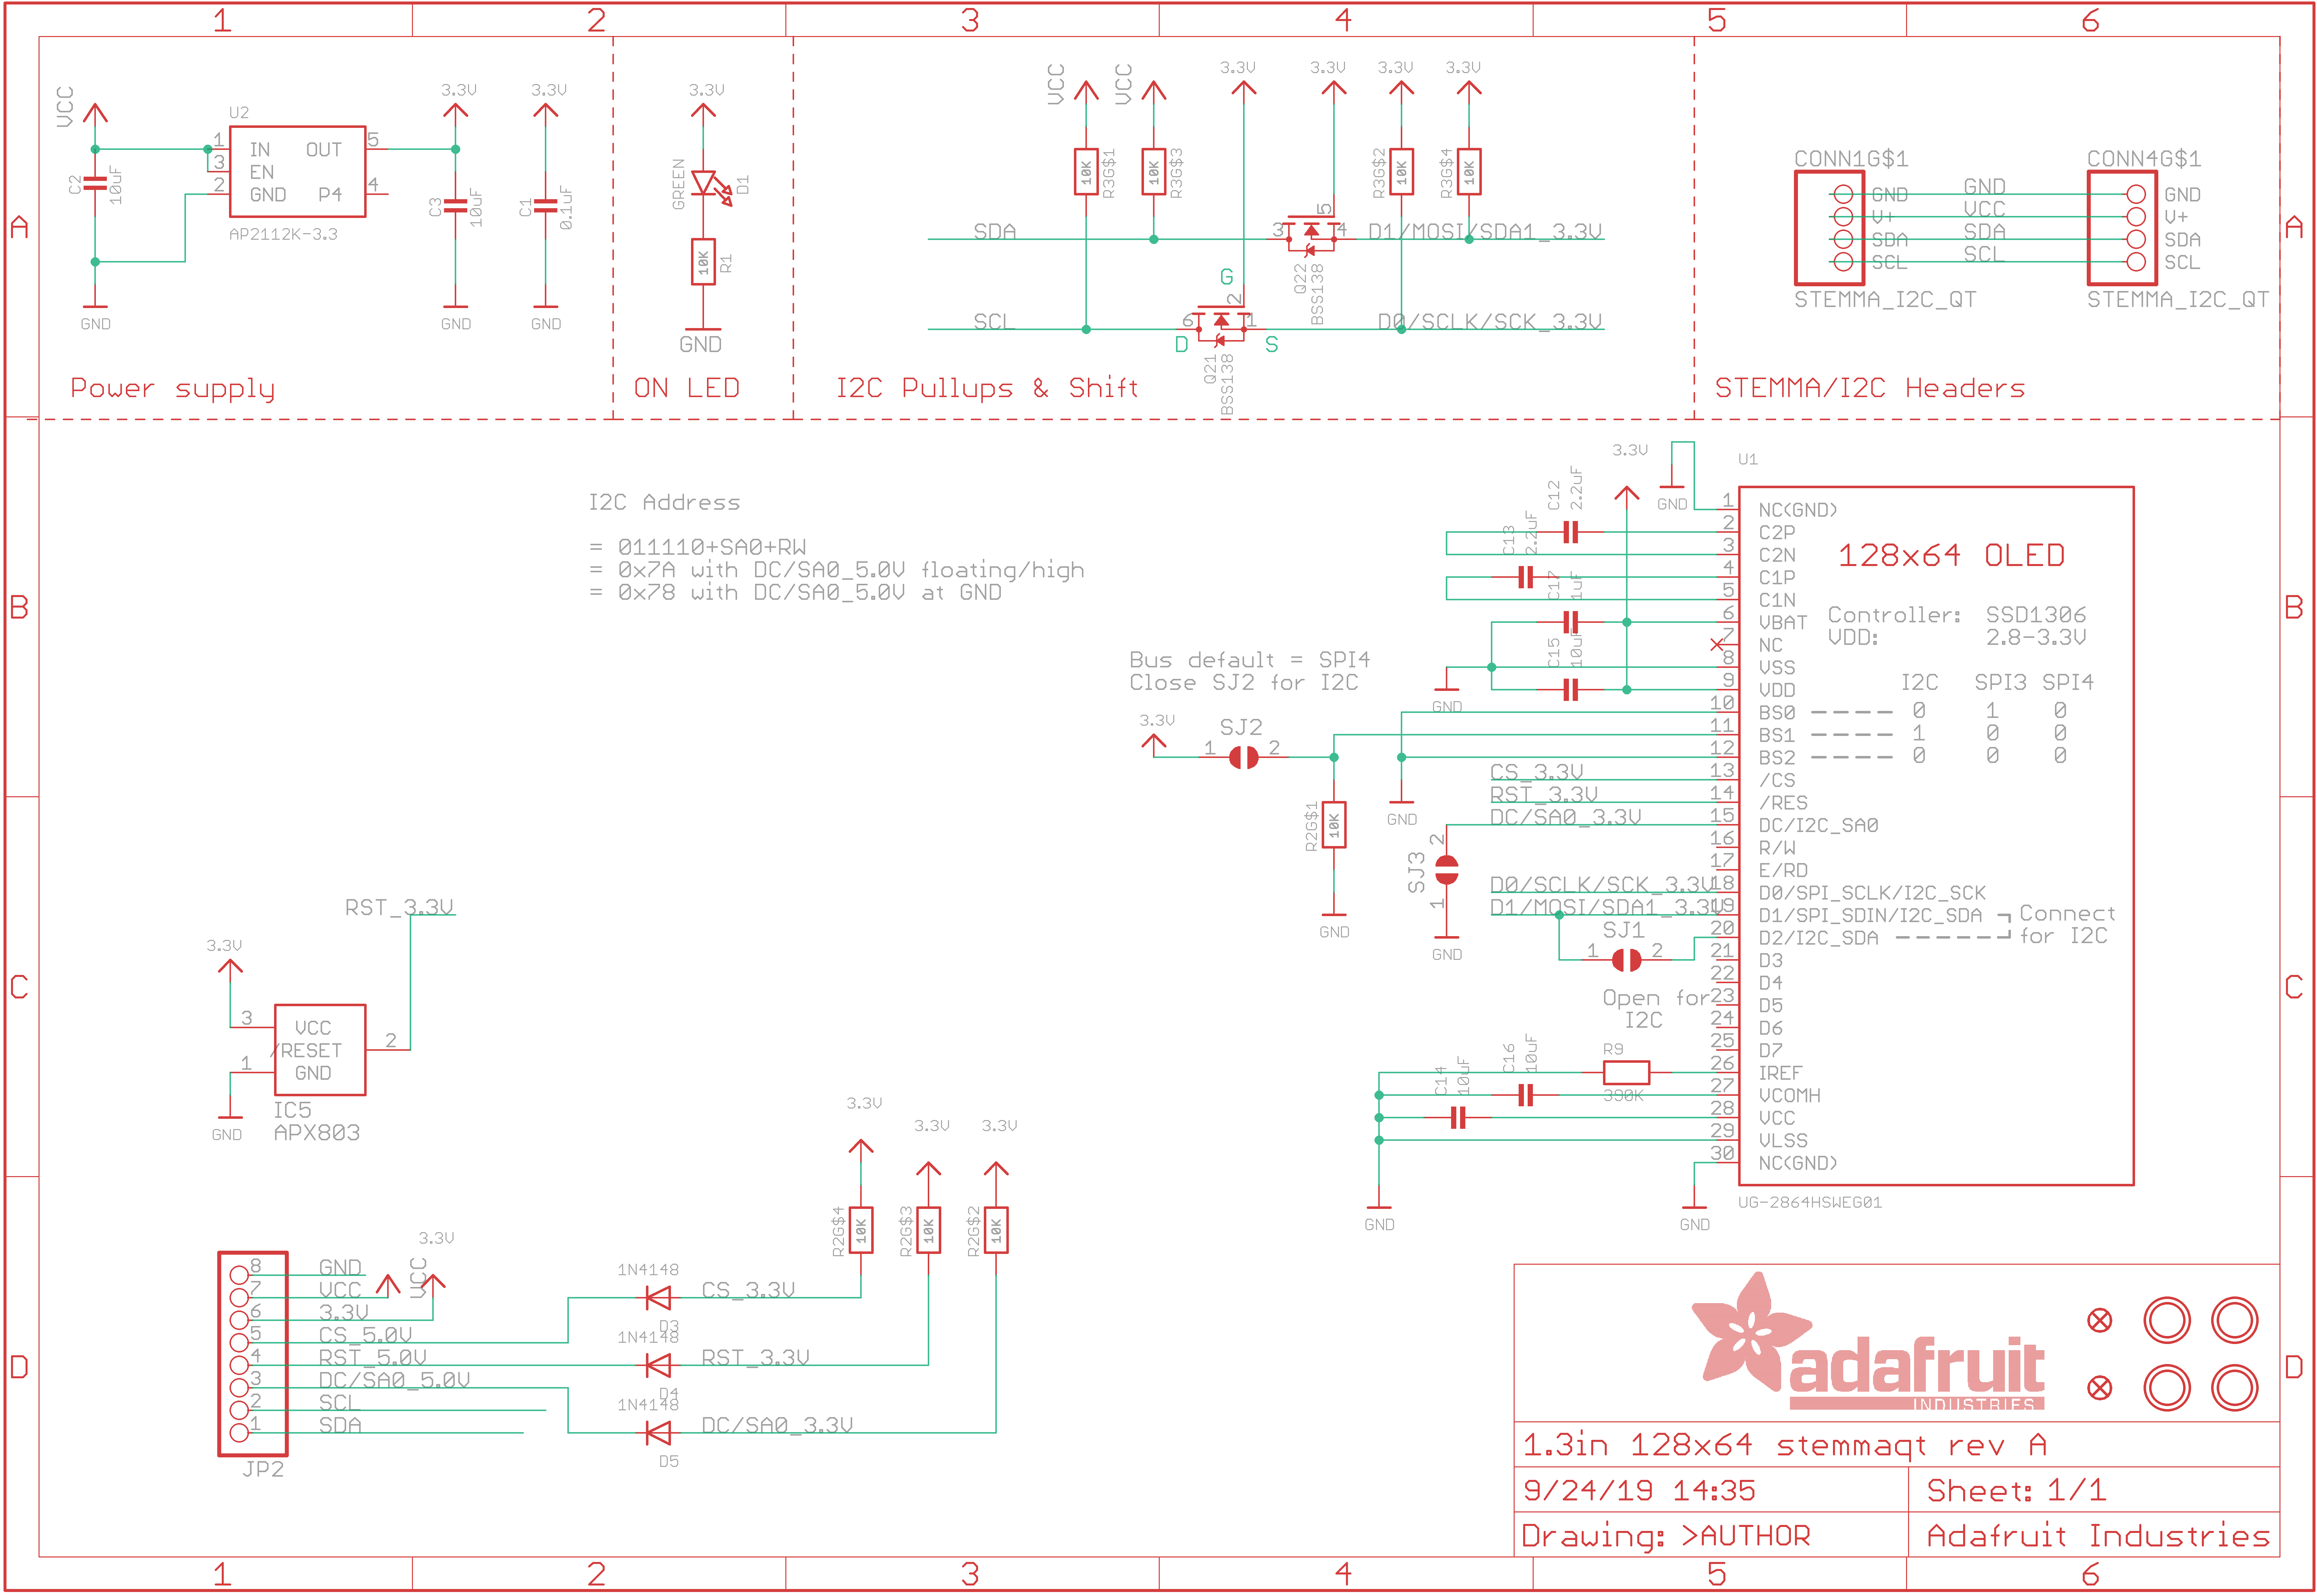 adafruit_products_1-3_STEMMA_OLED_sch.png